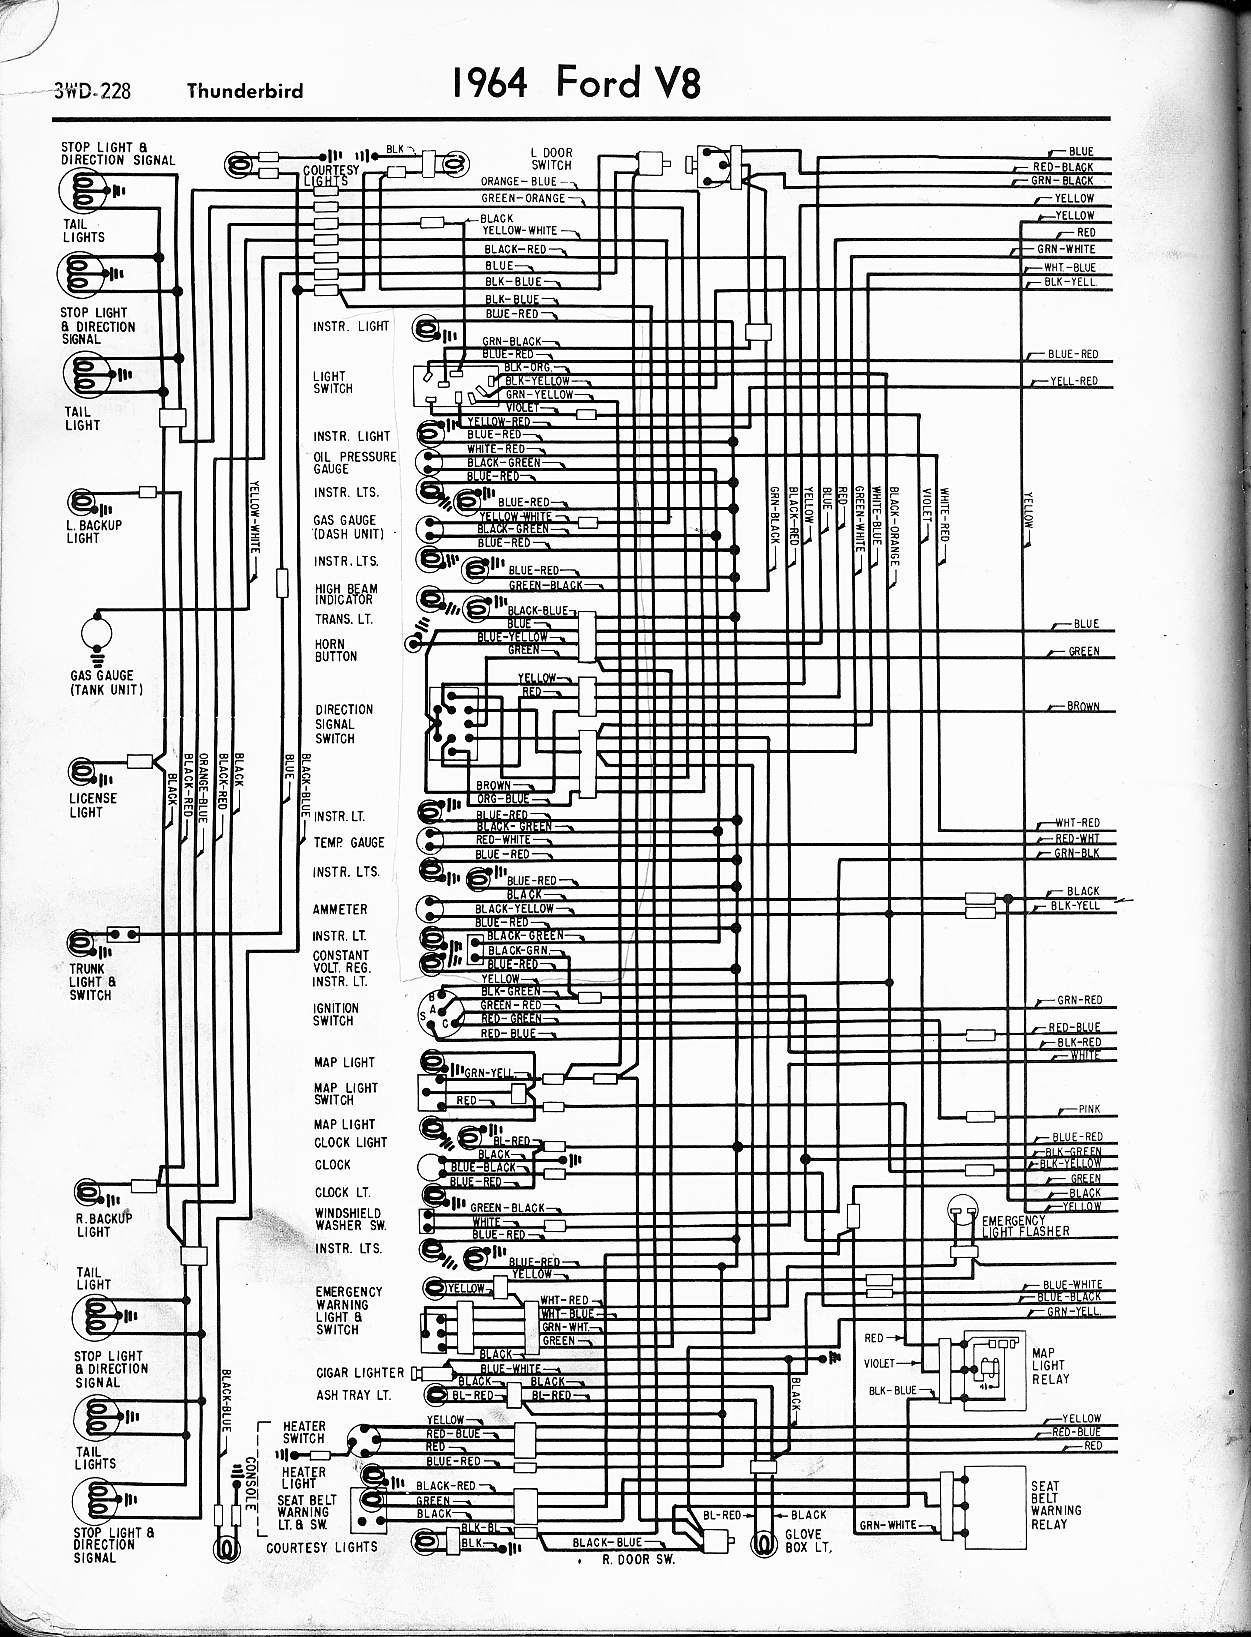 57 65 Ford Wiring Diagrams 1956 Mainline Diagram 1964 Thunderbird Left